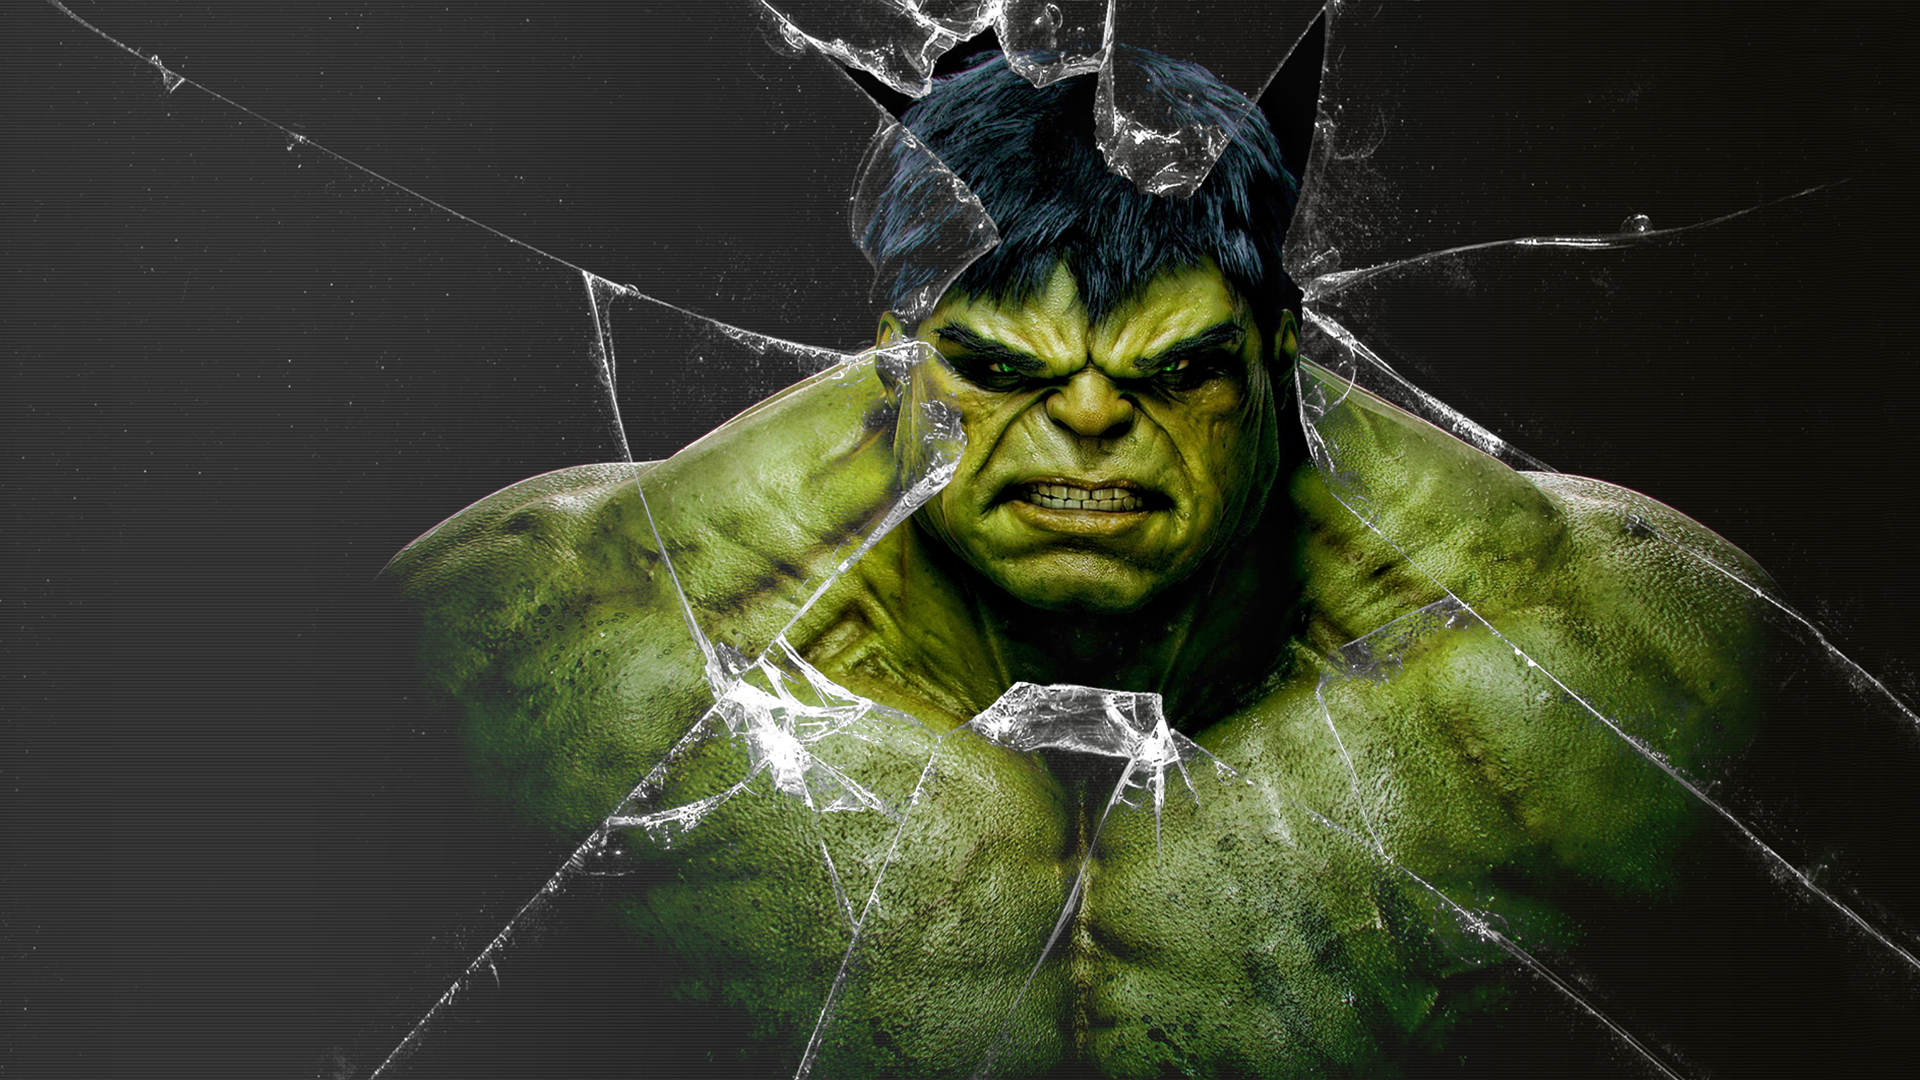 Please check our latest hd widescreen wallpaper below and bring beauty to your desktop. Hulk HD Wallpaper